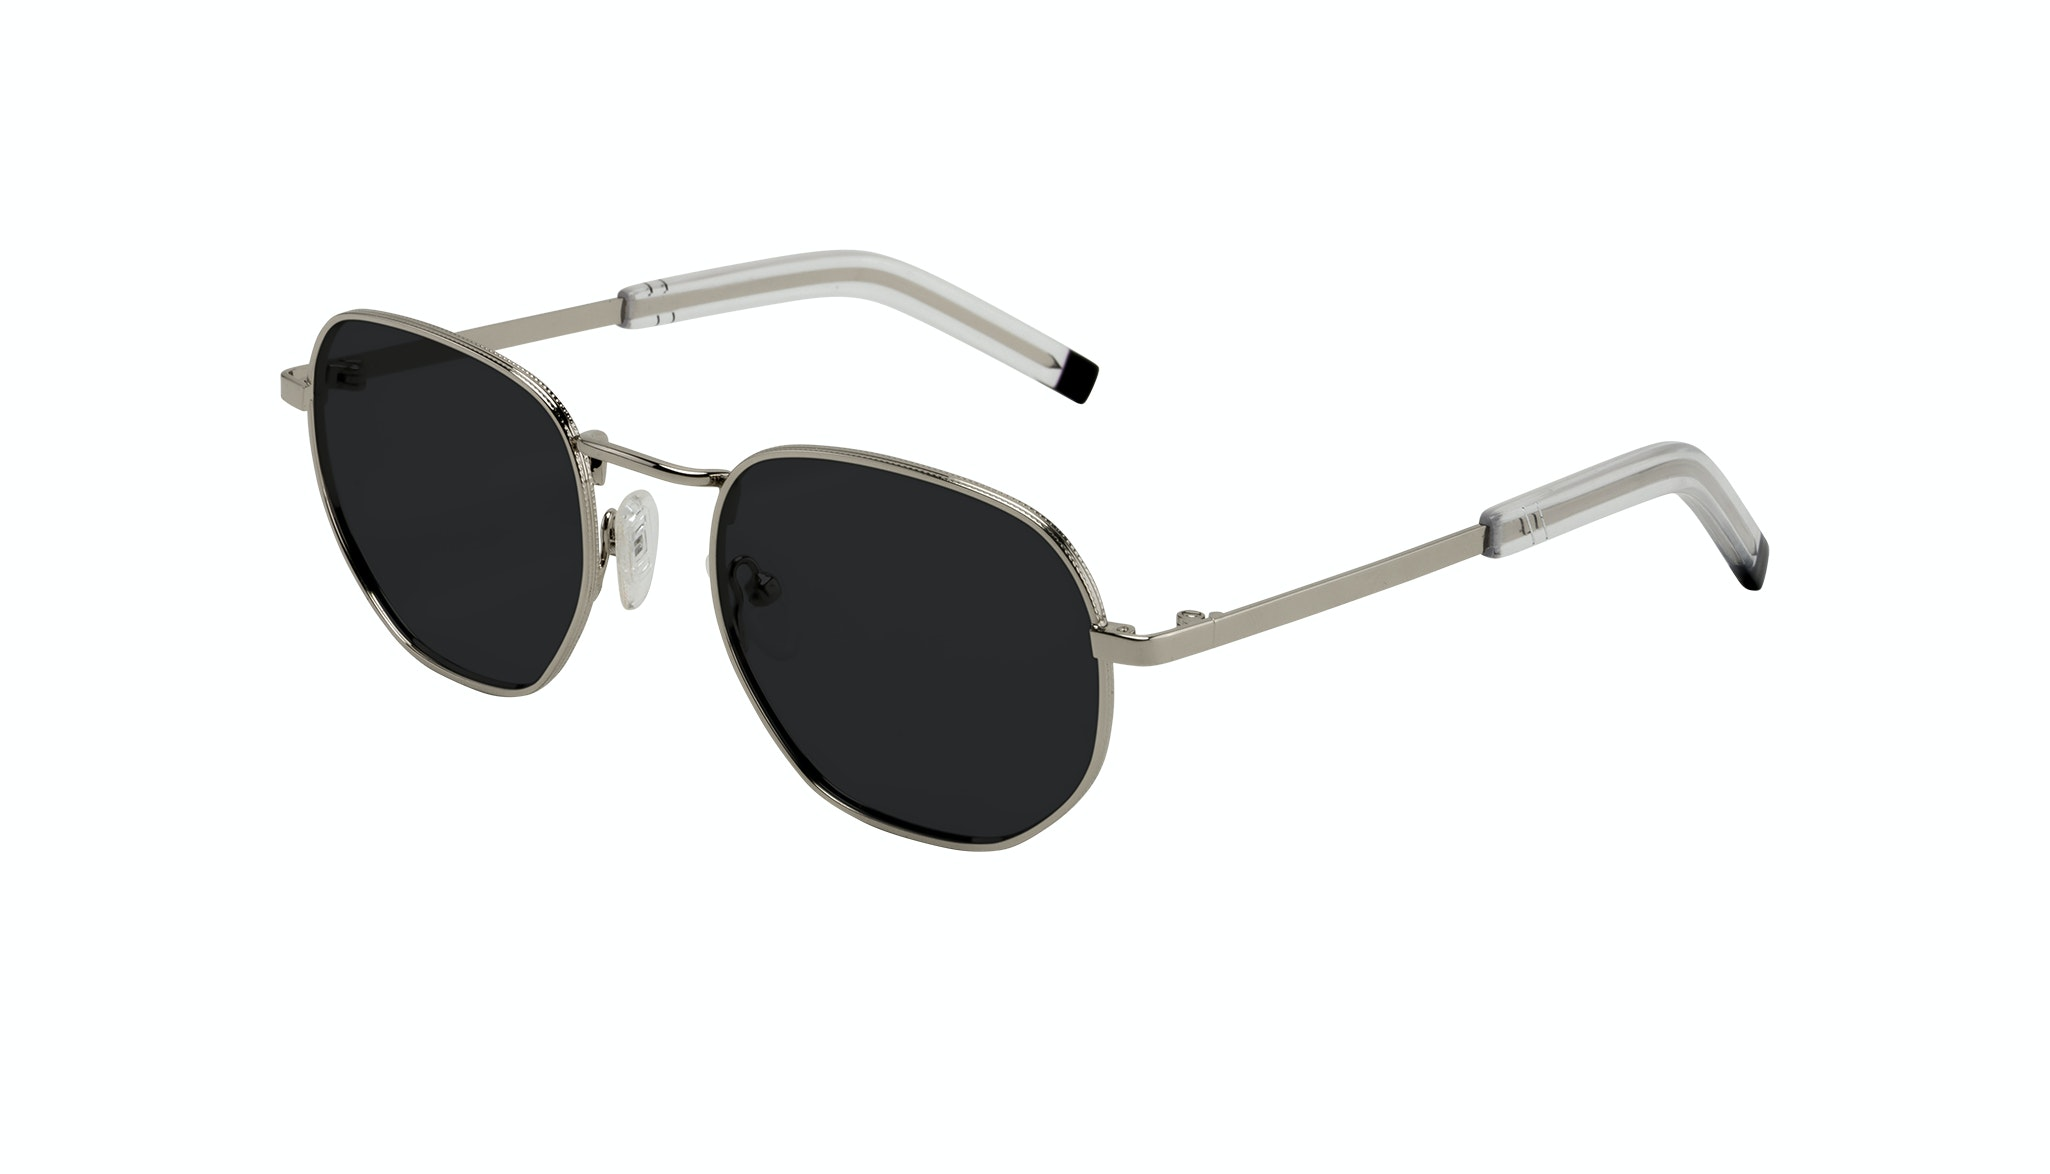 Affordable Fashion Glasses Round Sunglasses Men Rise Silver Tilt